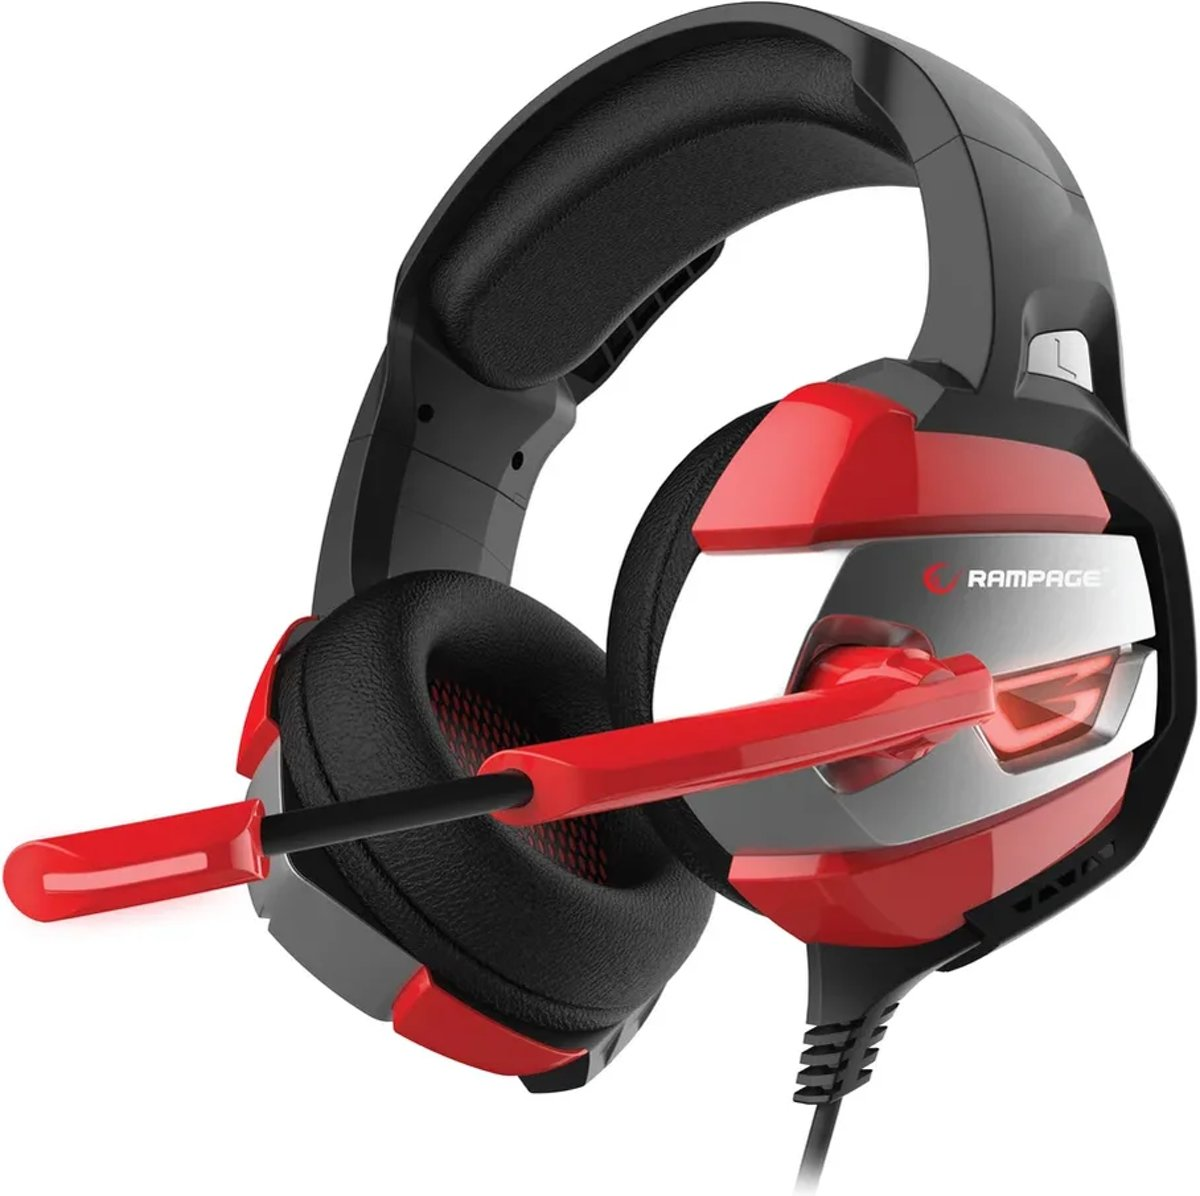 Rampage RM-K5 Noble 7.1 surround sound gaming headset